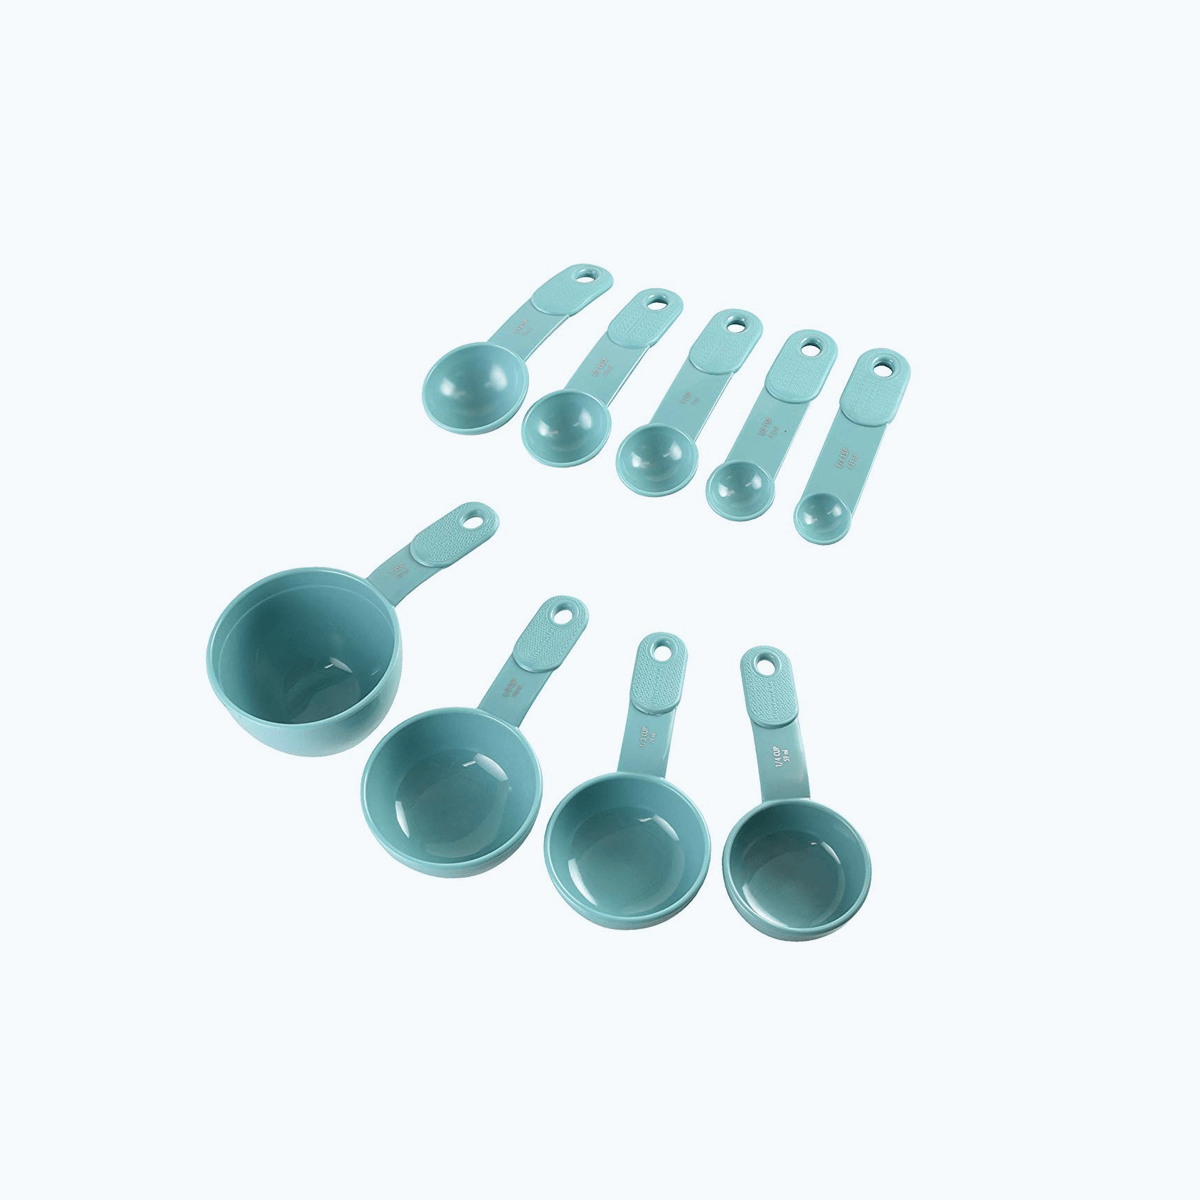 9-Piece Measuring Set, Aqua Sky